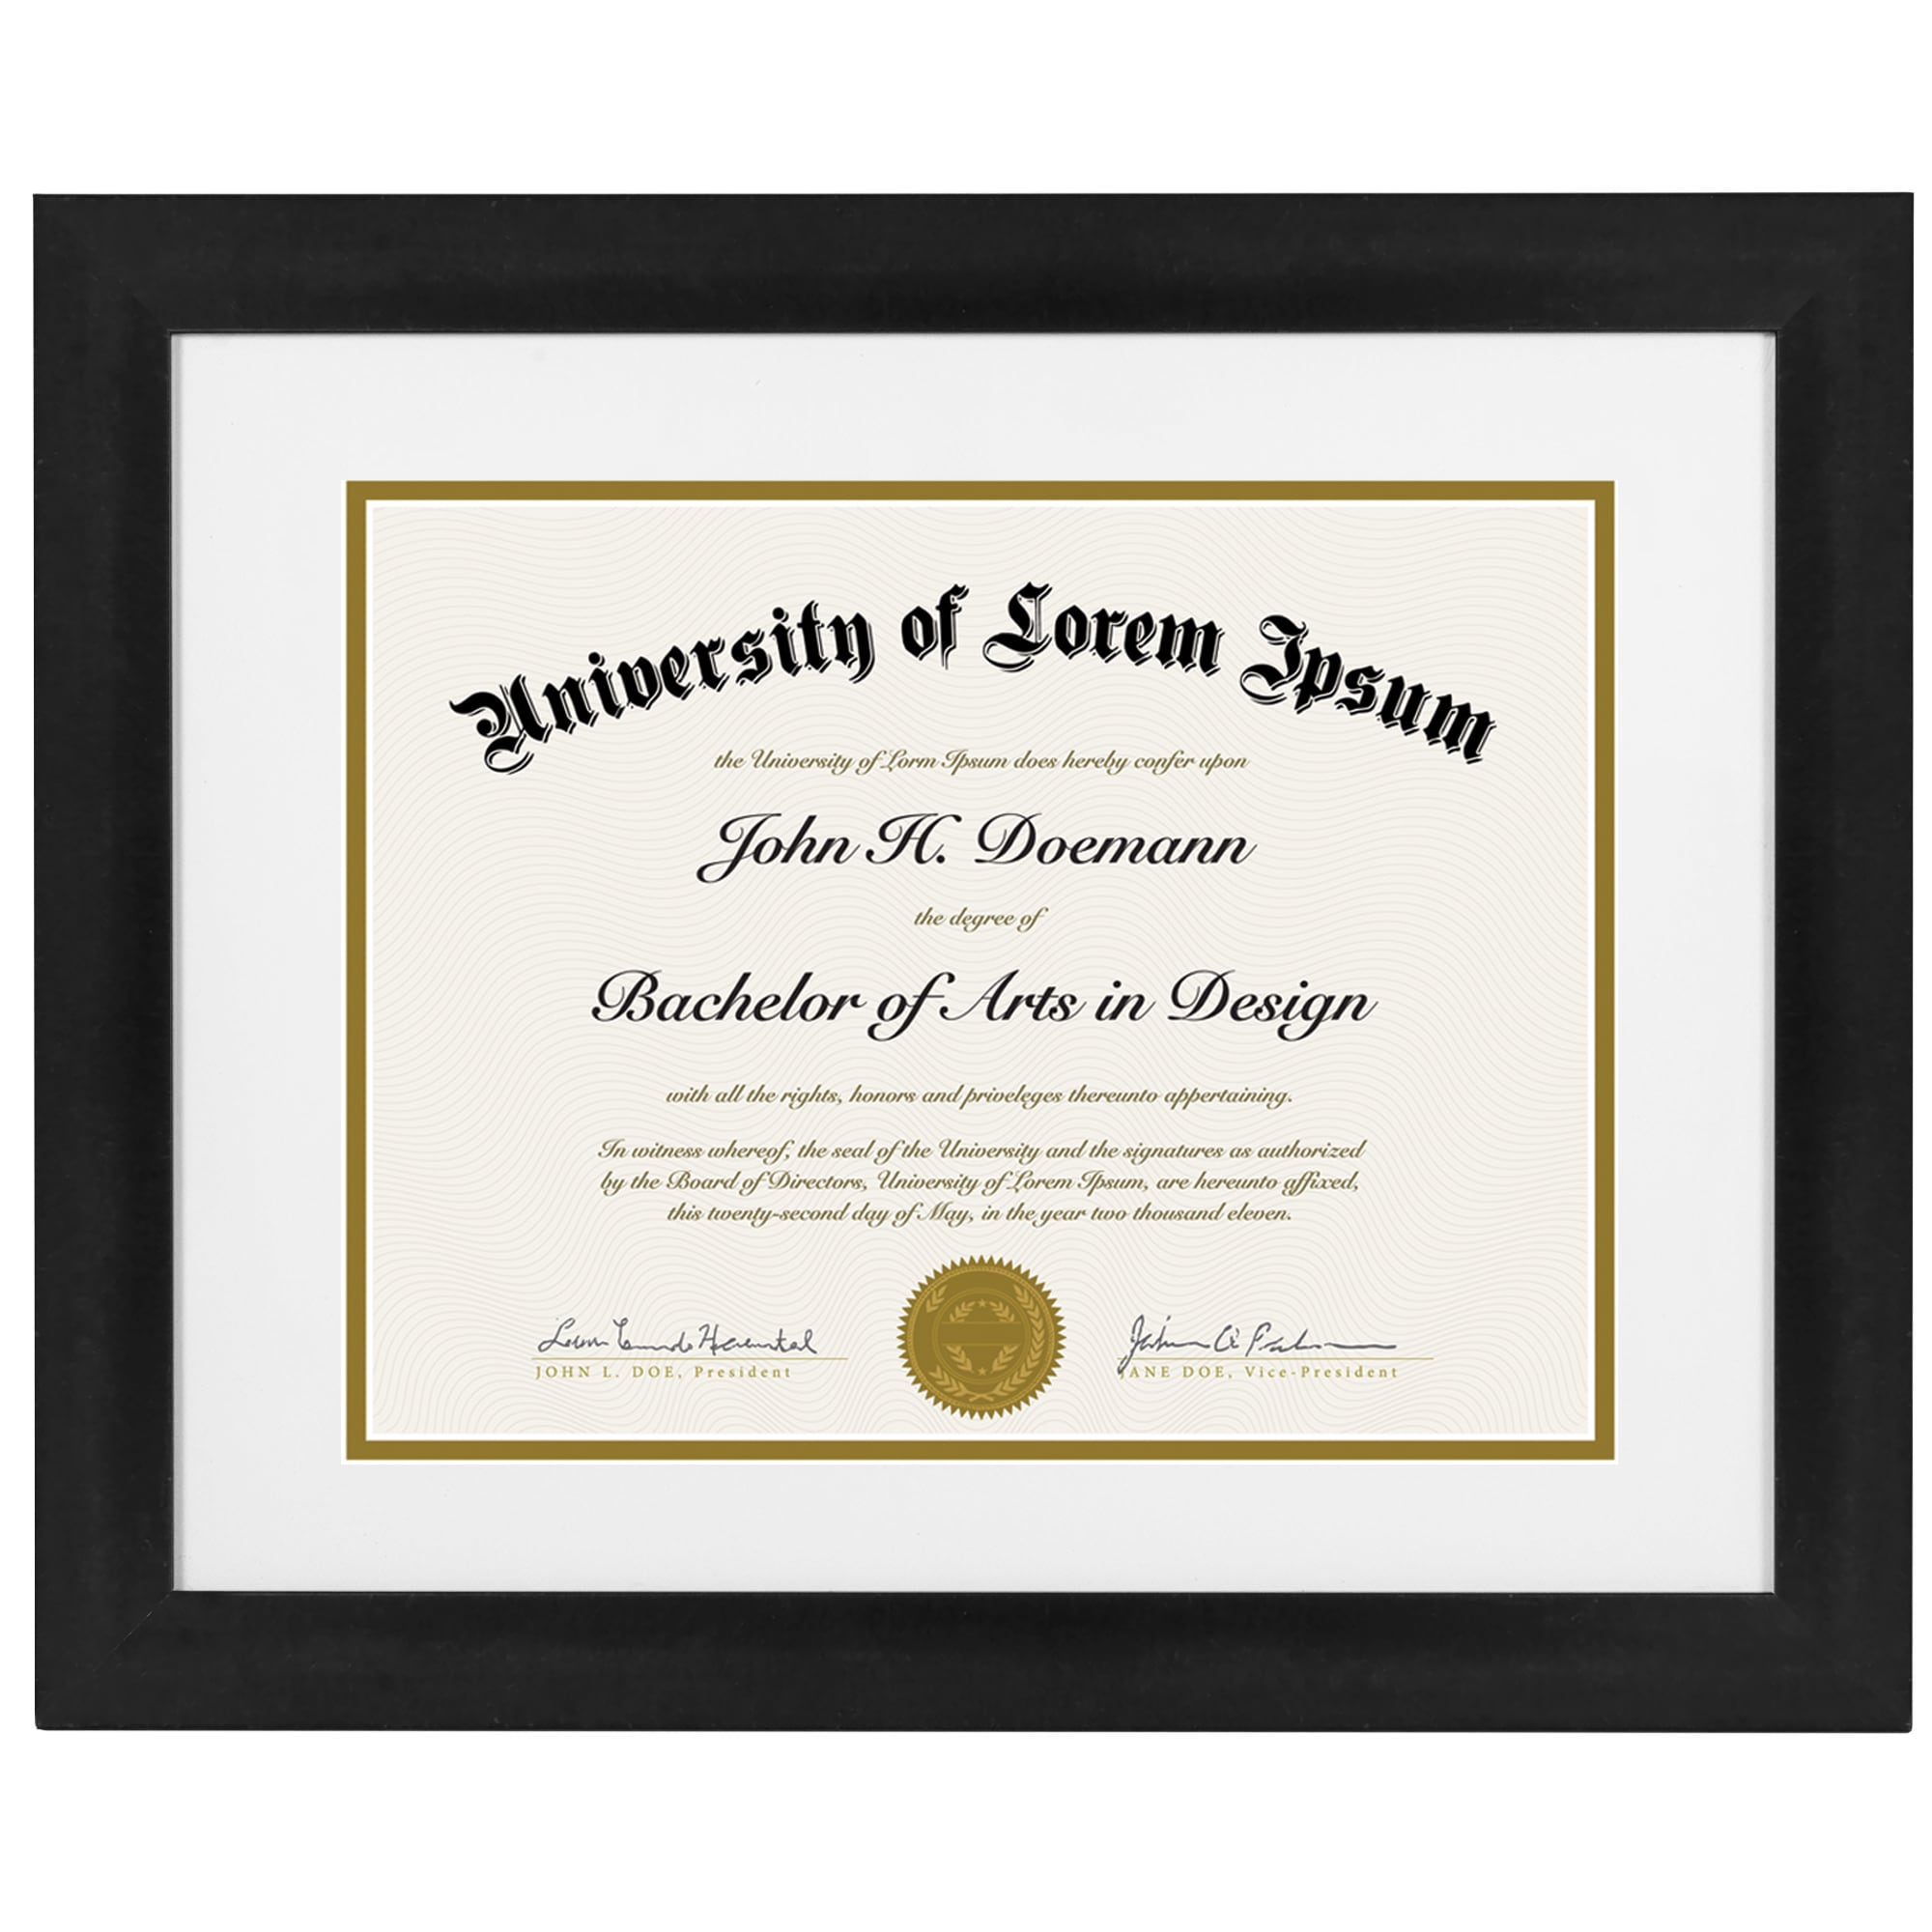 2 Pack 11x14 Black Document Frames Made for Documents Sized 8.5x11 Inches with Mat and 11x14 Inches without Mat